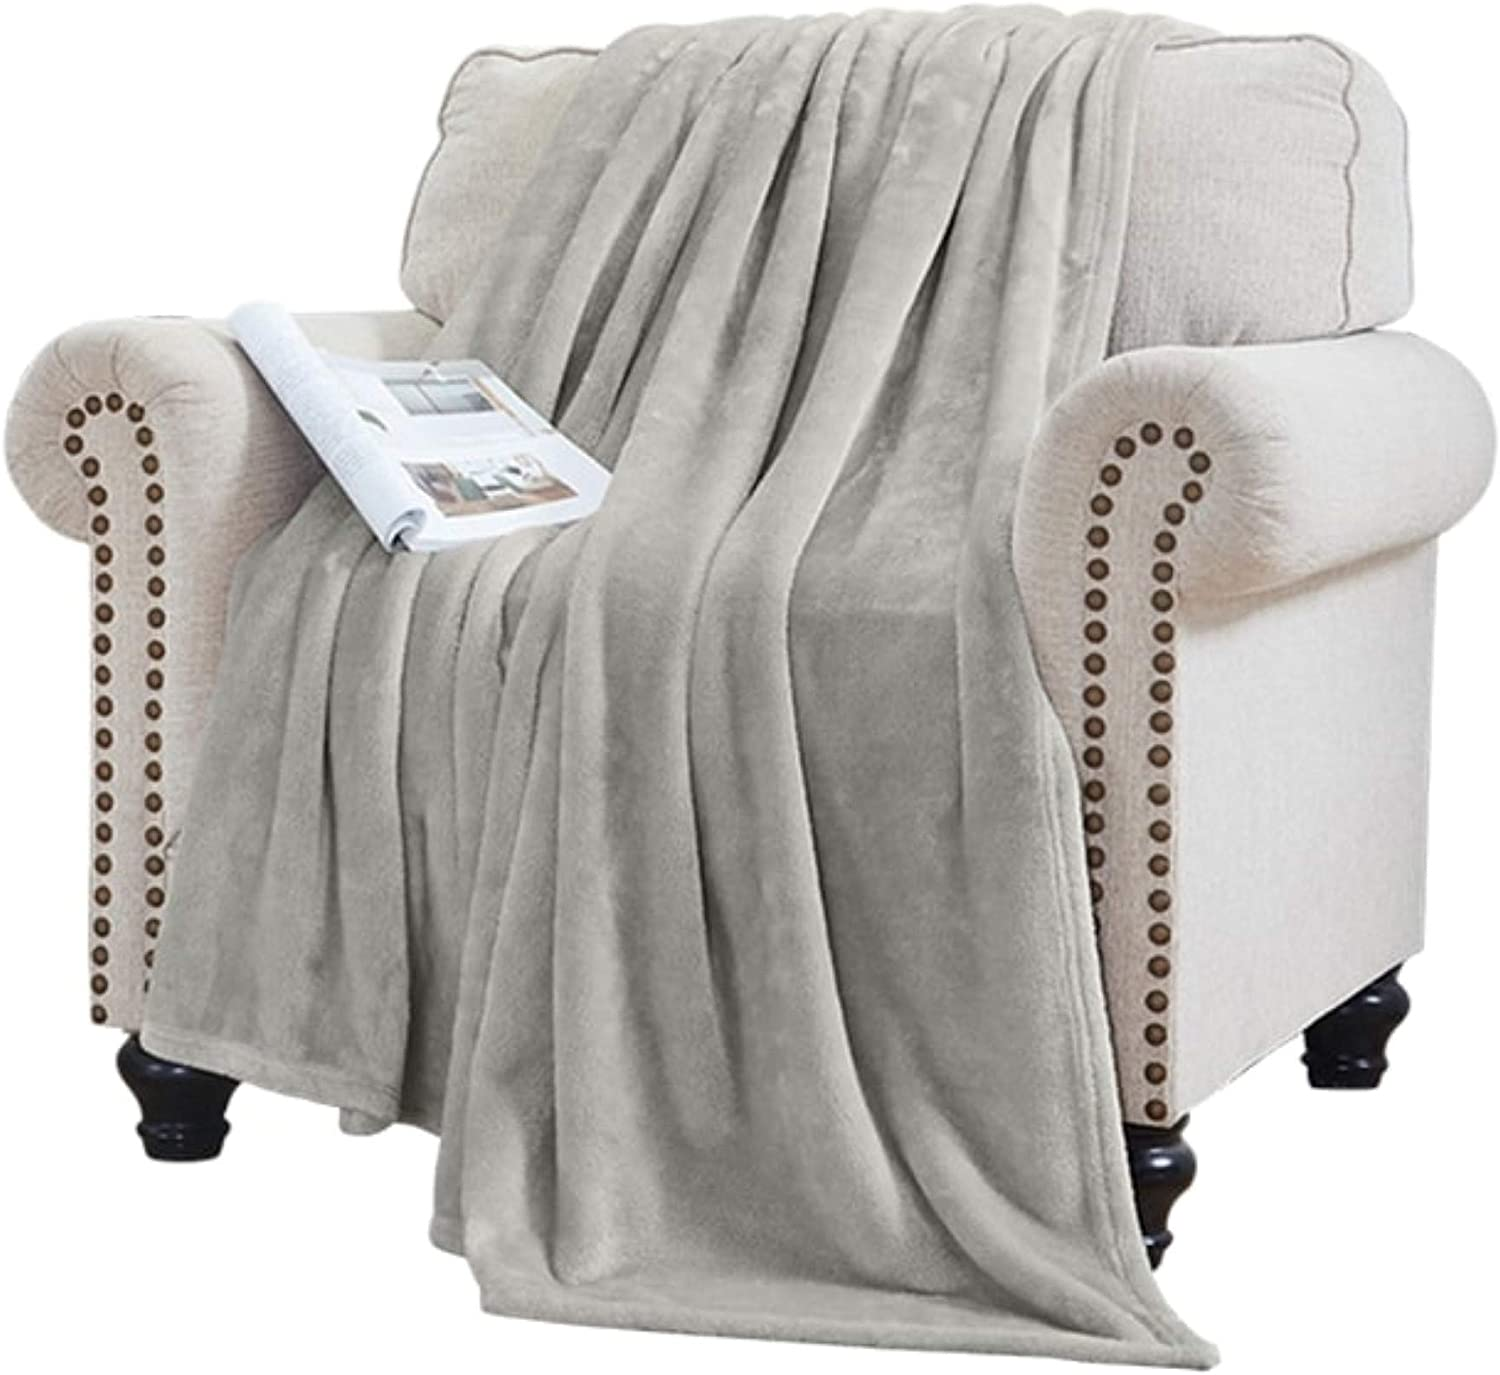 Elle Decor Solid Plush Oversized Throw Blanket - Silky Soft and Cozy Flannel Fleece, for Bed and Couch - Oversized Throw 60